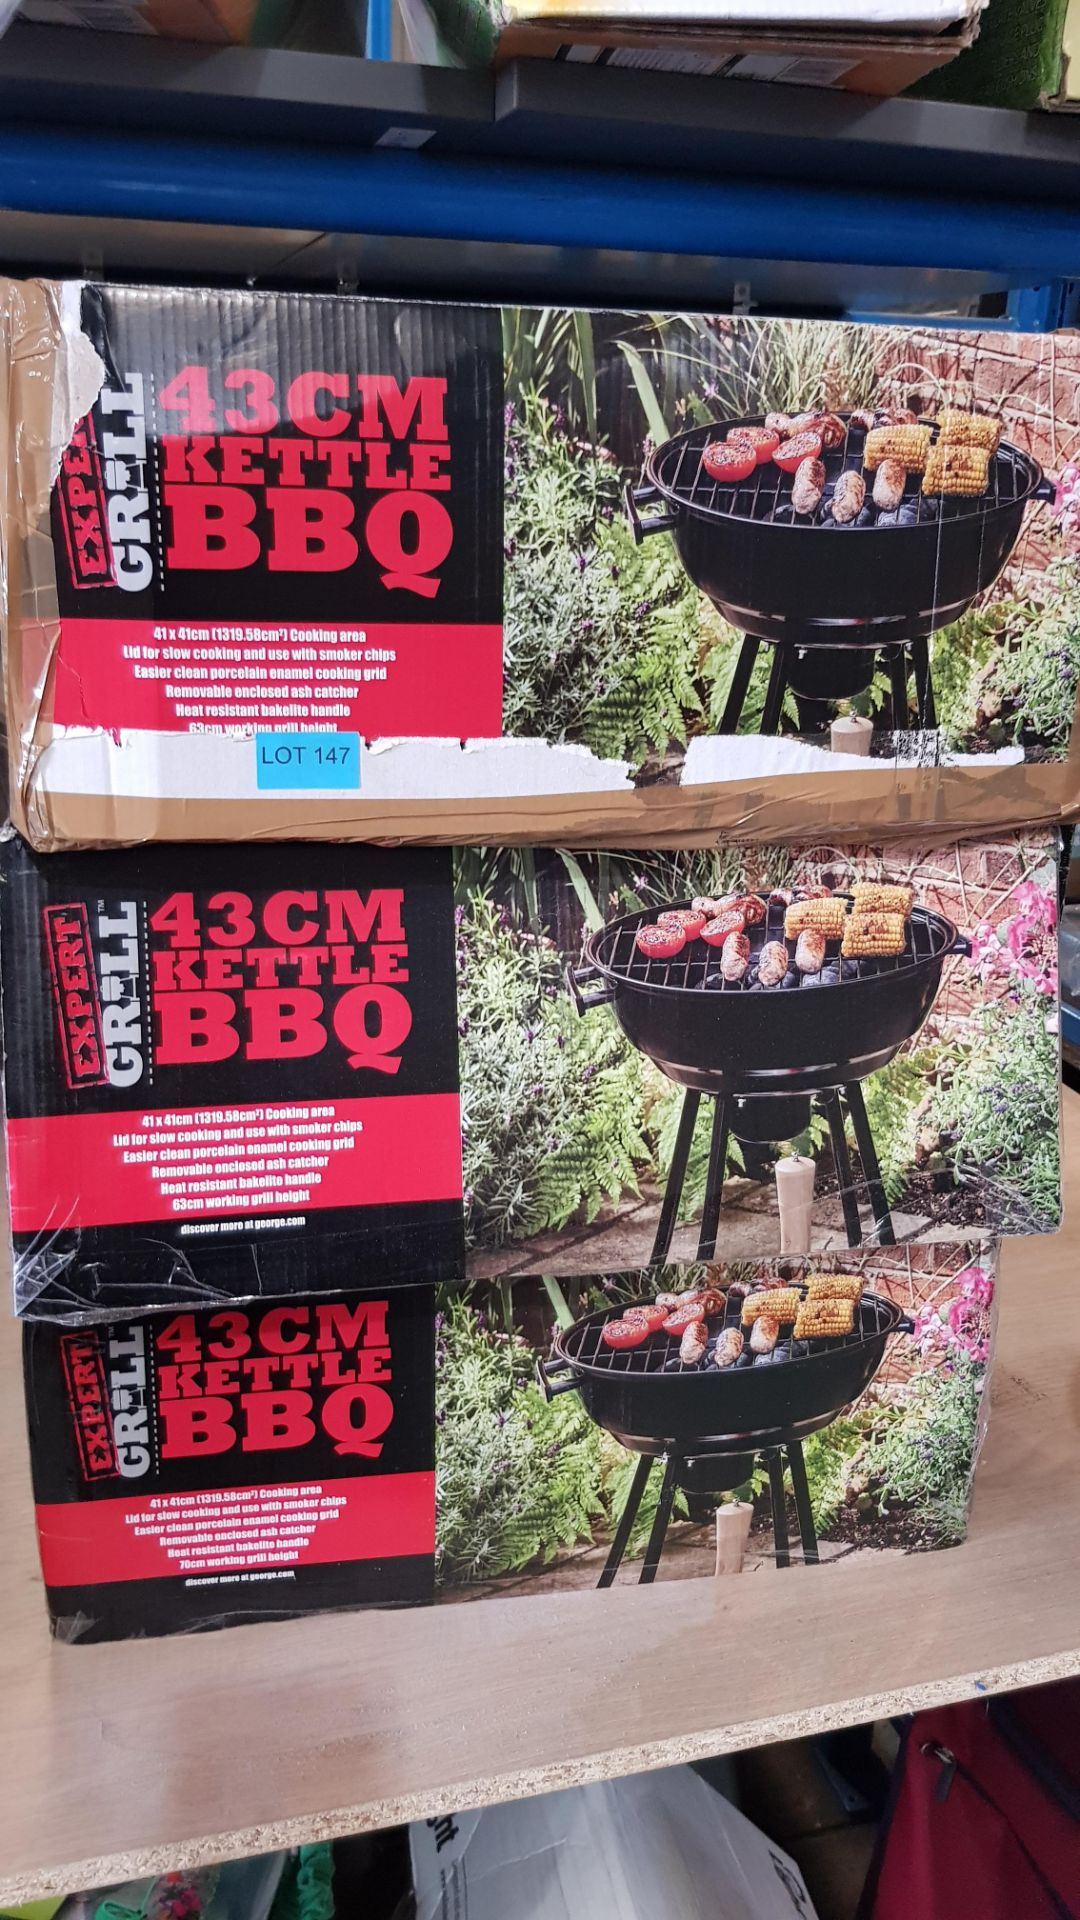 (3F) 3x Expert Grill 43cm Kettle BBQ. - Image 3 of 3